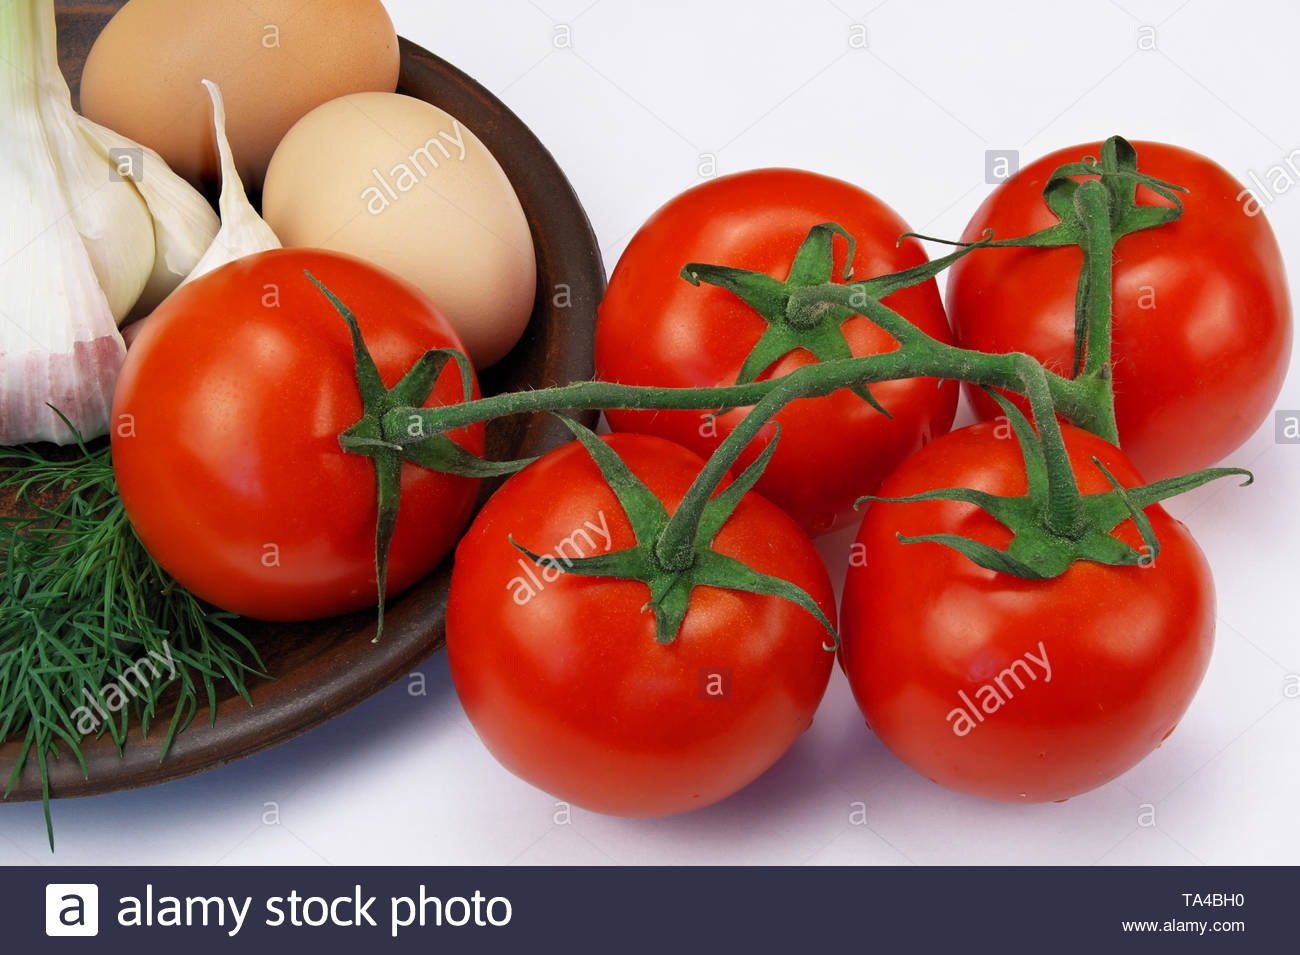 Five red ripe tomatoes on a twig and two eggs with a head of garlic on a clay plate on a white background close-up - Stock Image